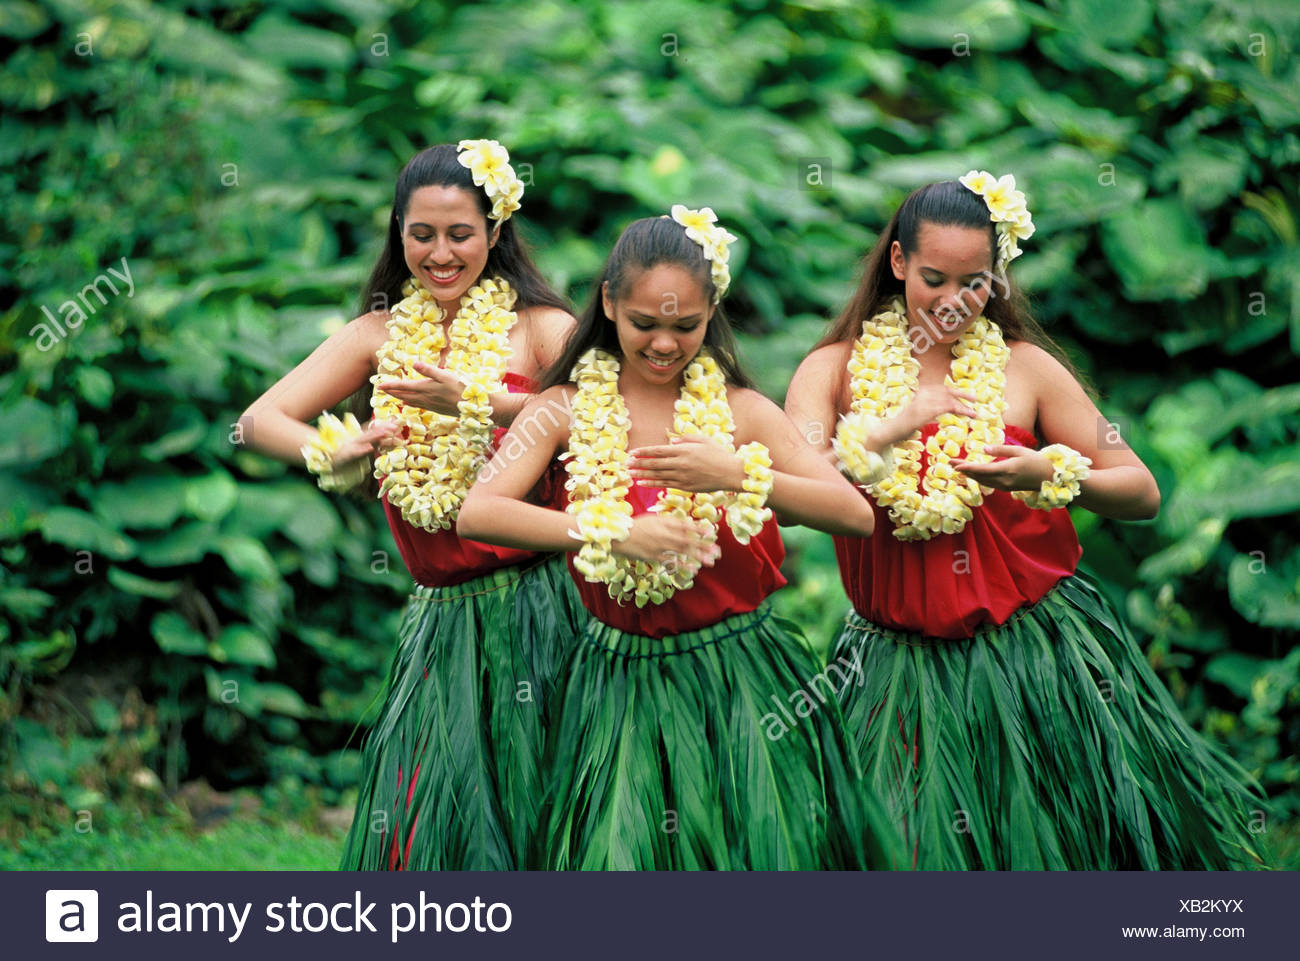 Three Hula Dancers in ti leaf skirts and yellow plumeria leis performing an Auana style hula Stock Photo